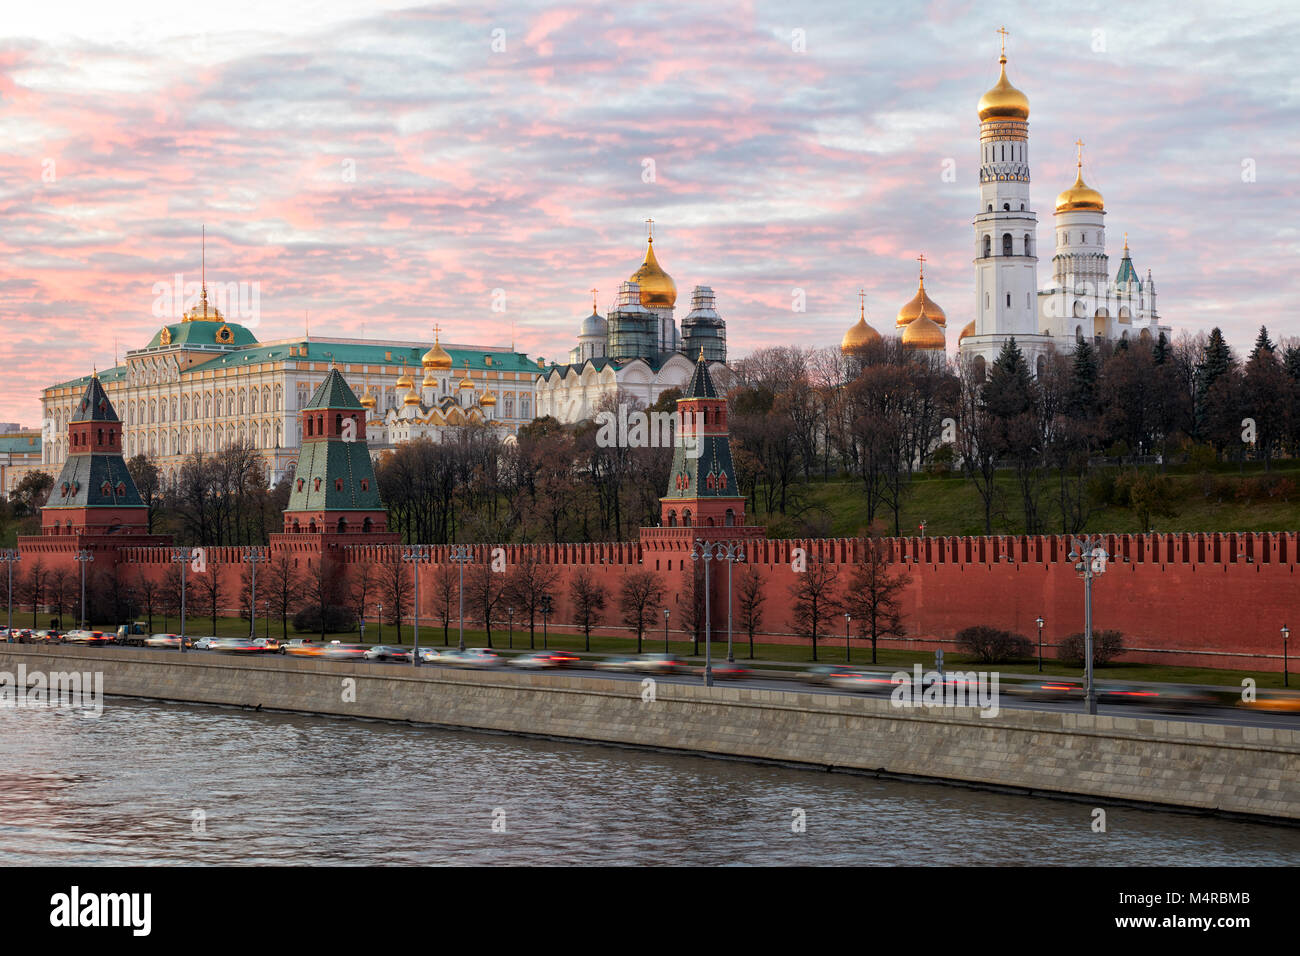 Kremlin cathedrals behind the southern part of the Kremlin Wall at dusk. Moscow, Russia. - Stock Image